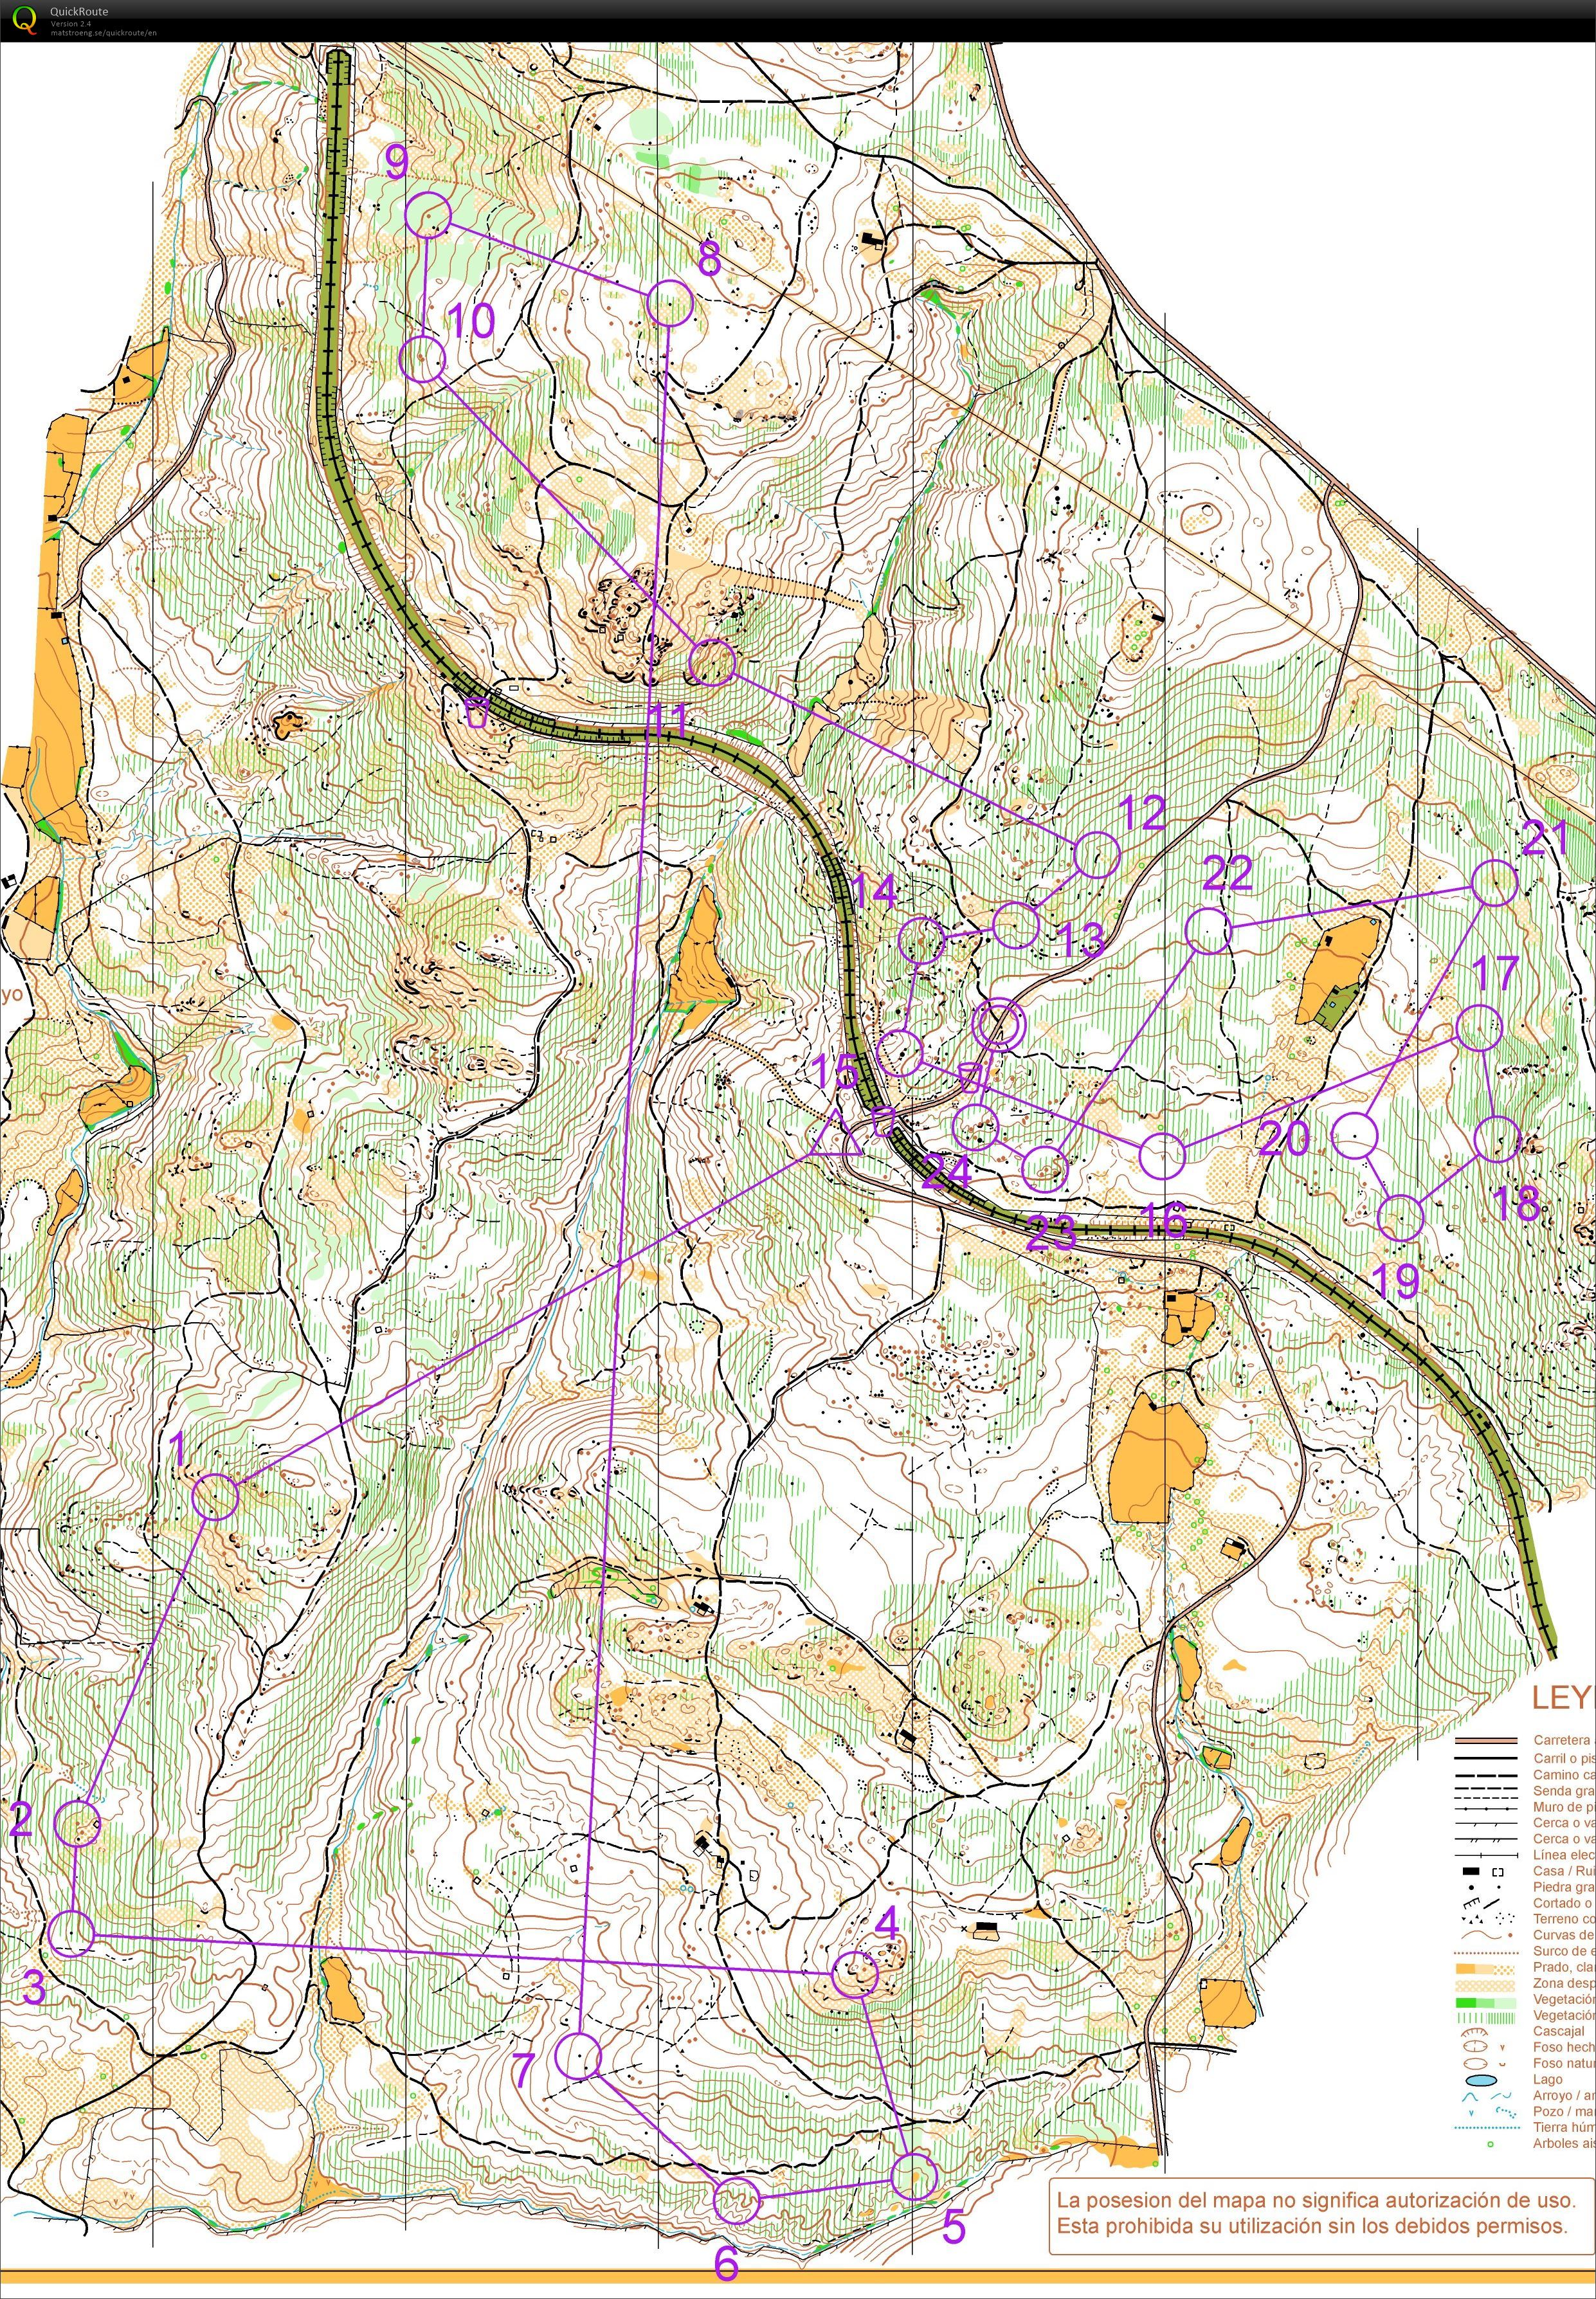 ultimo test woc (2017-06-25)